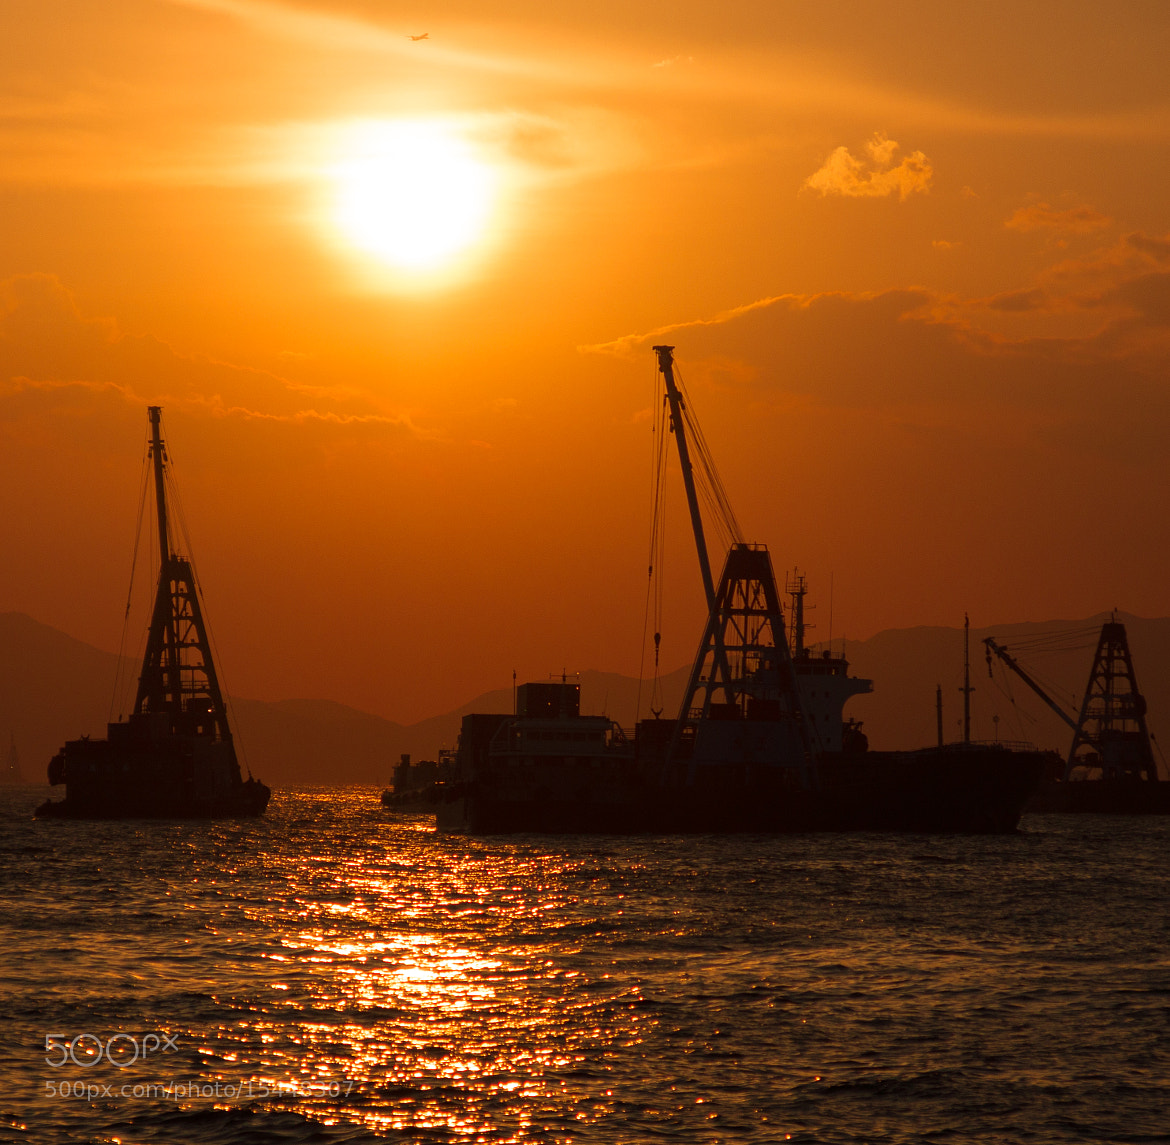 Photograph Harbour Sunset by Adrian Armirail on 500px